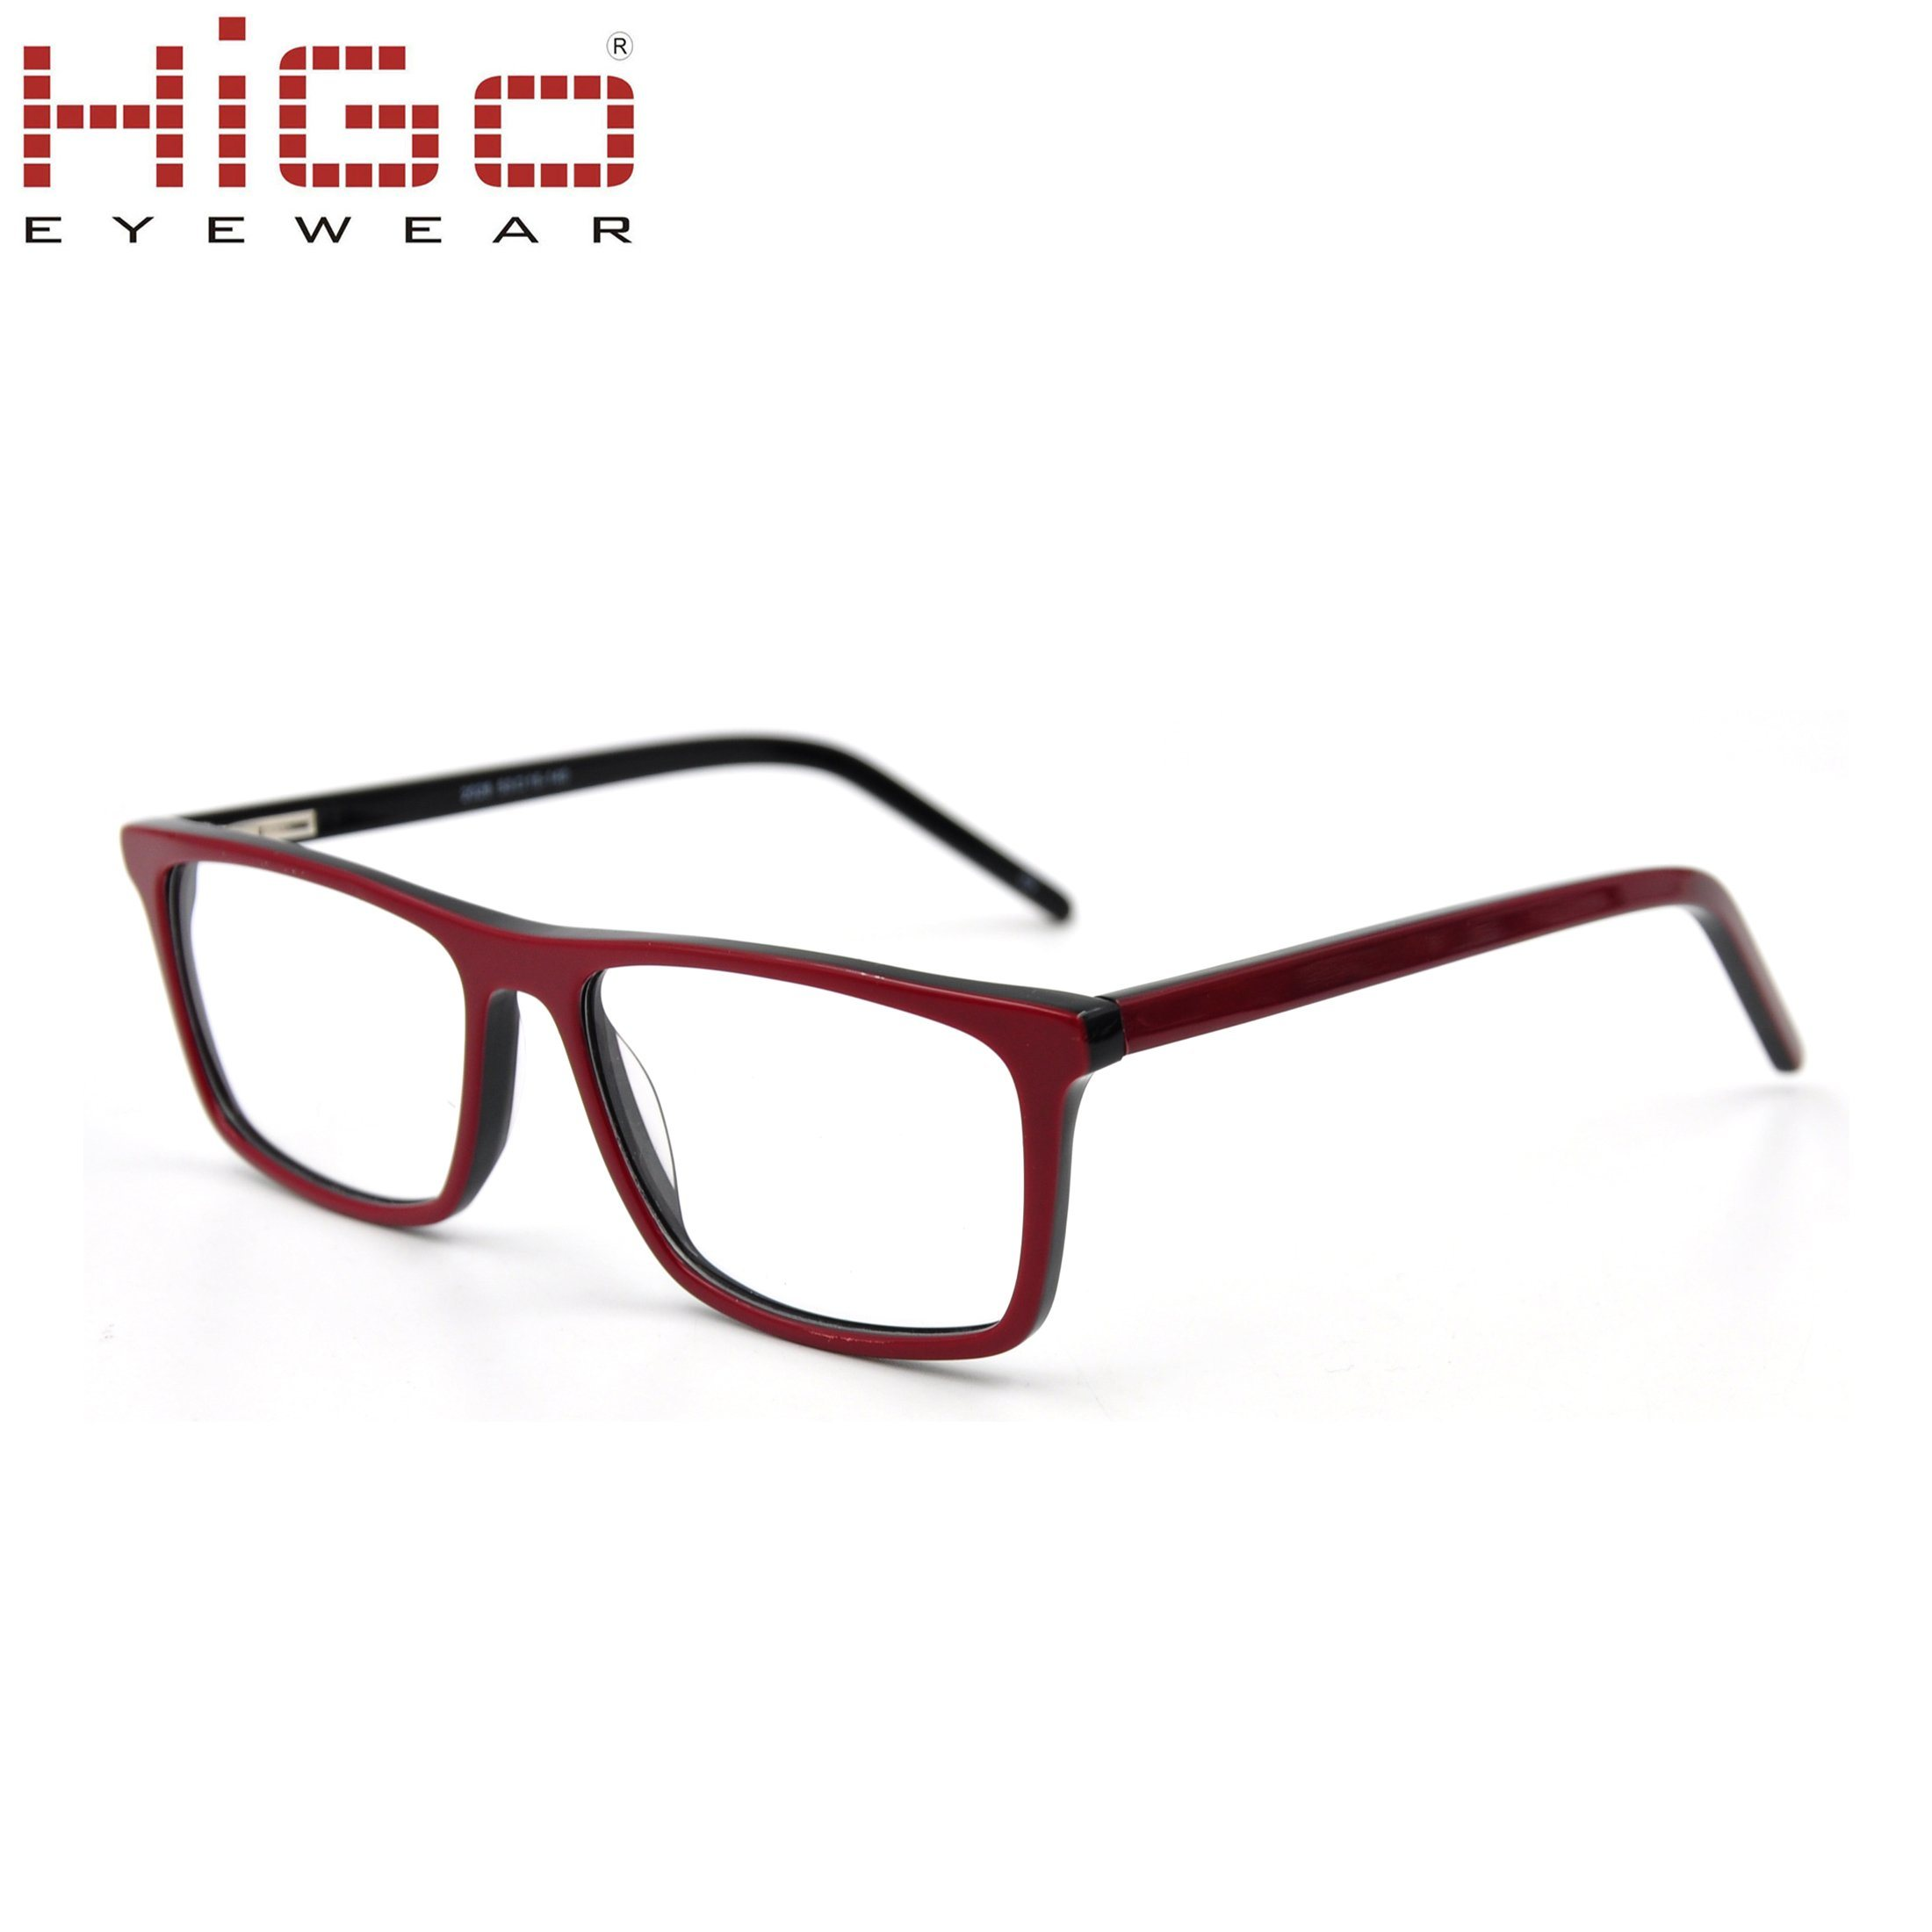 659e8d7212e China Wholesale Glasses with Acetate Frame Material Optical Frames ...